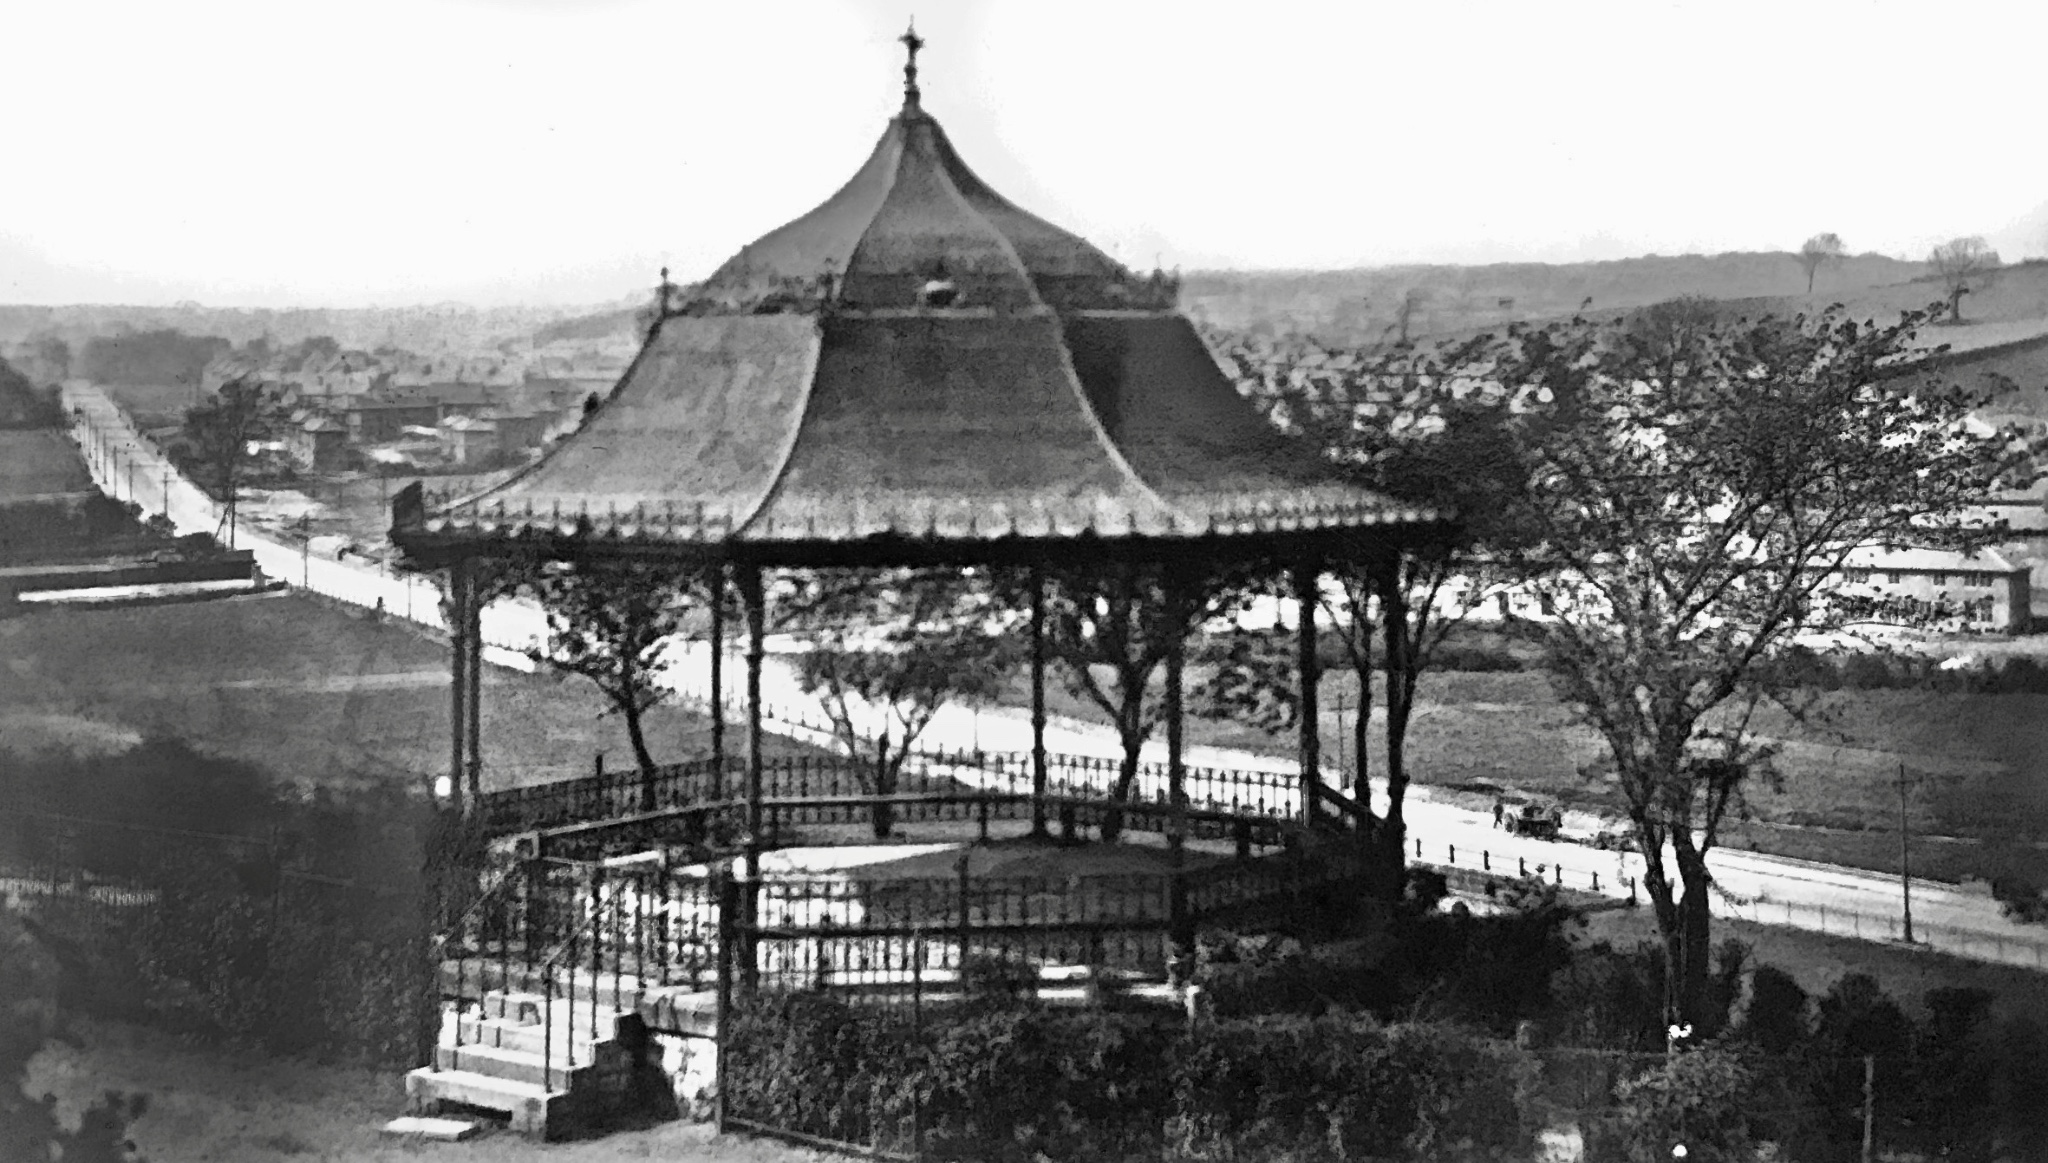 Bandstand and New Farm Hill Estate, from Woodhouse Ridge, 1930s